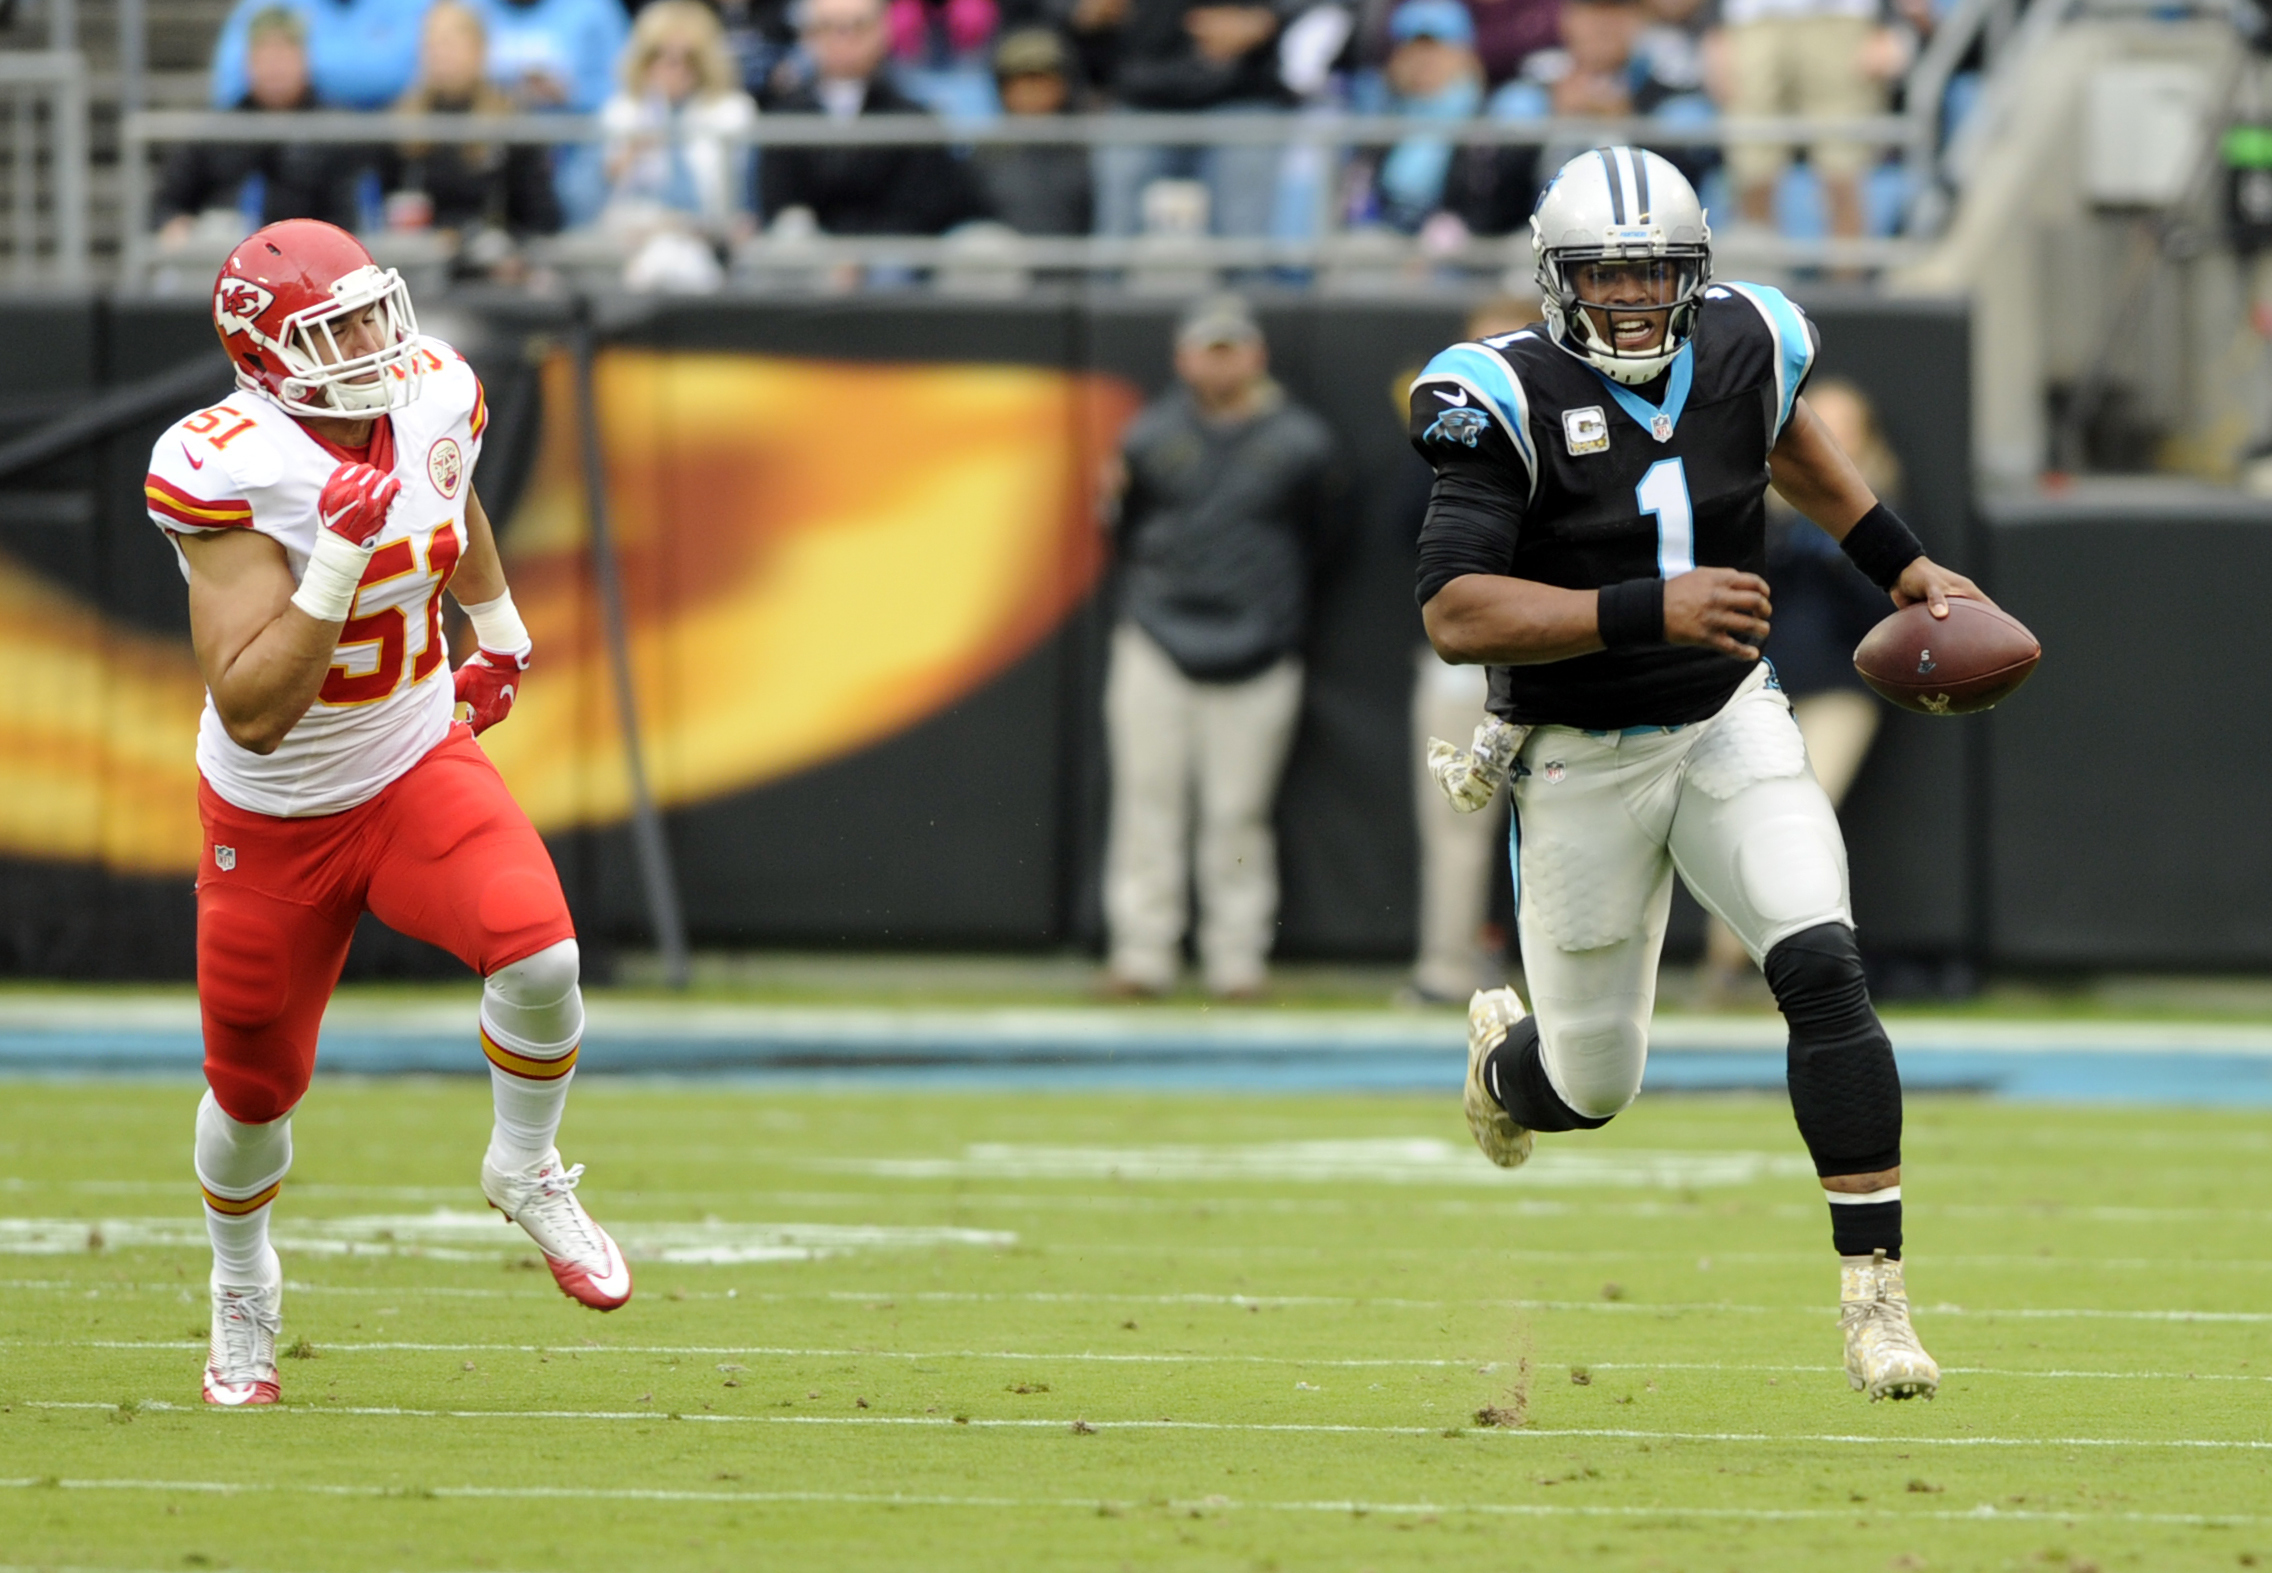 Carolina Panthers' Cam Newton (1) runs past Kansas City Chiefs' Frank Zombo (51) in the first half of an NFL football game in Charlotte, N.C., Sunday, Nov. 13, 2016. (AP Photo/Mike McCarn)